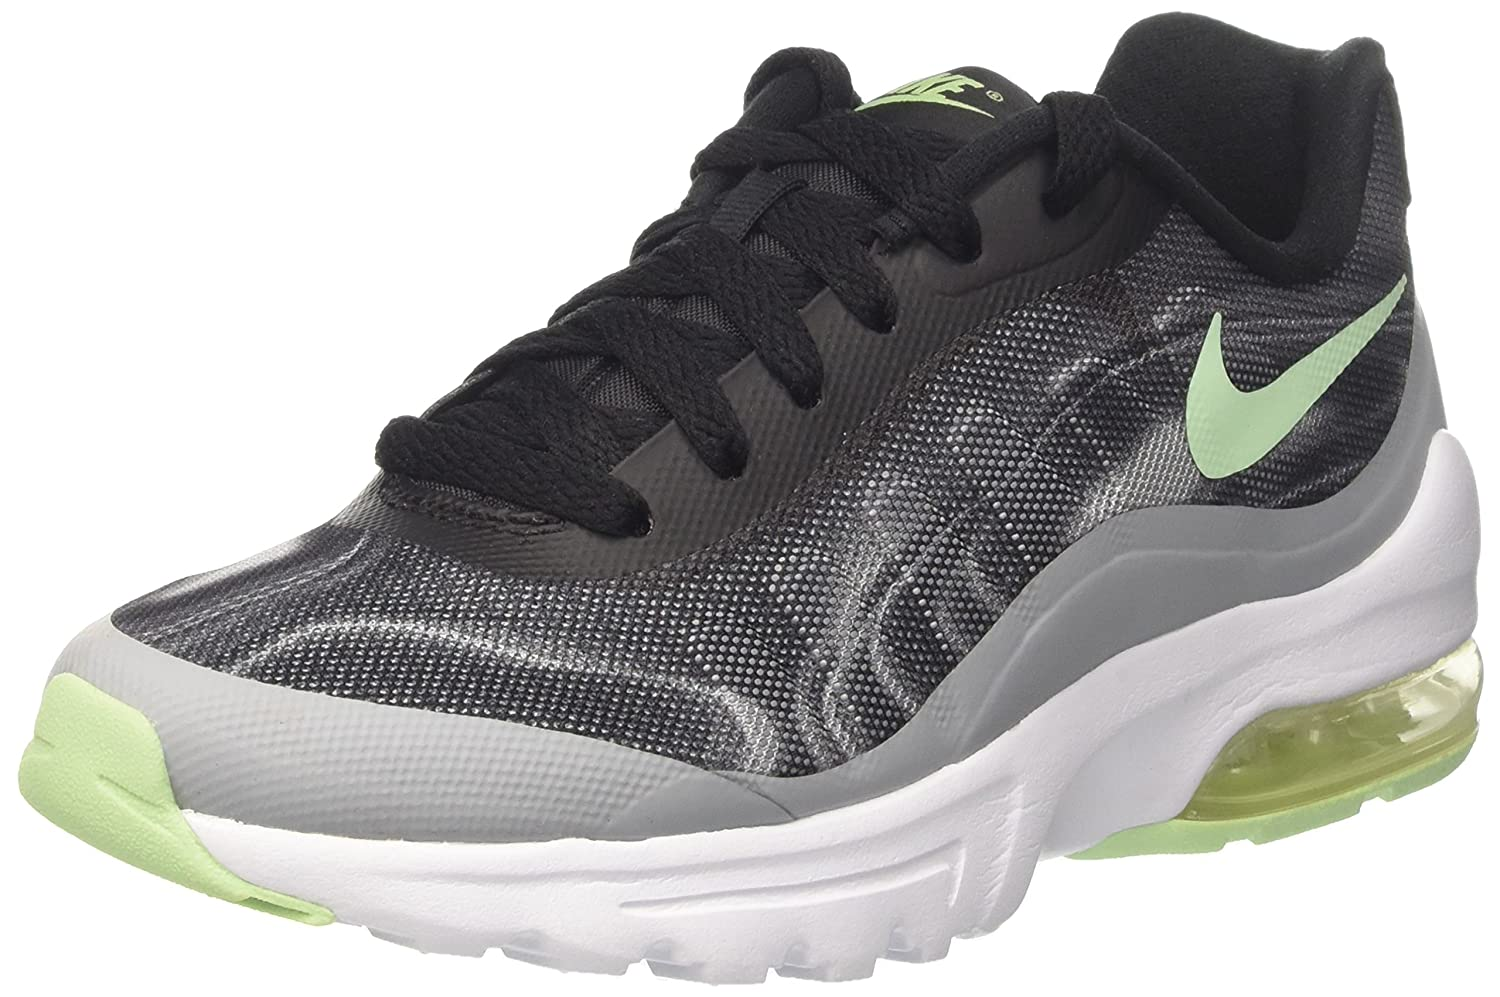 NIKE Women's Air Max Invigor Print Running Shoe B00CLNI6R8 6 B(M) US|Black/Fresh Mint/Wolf Grey/Racer Pink